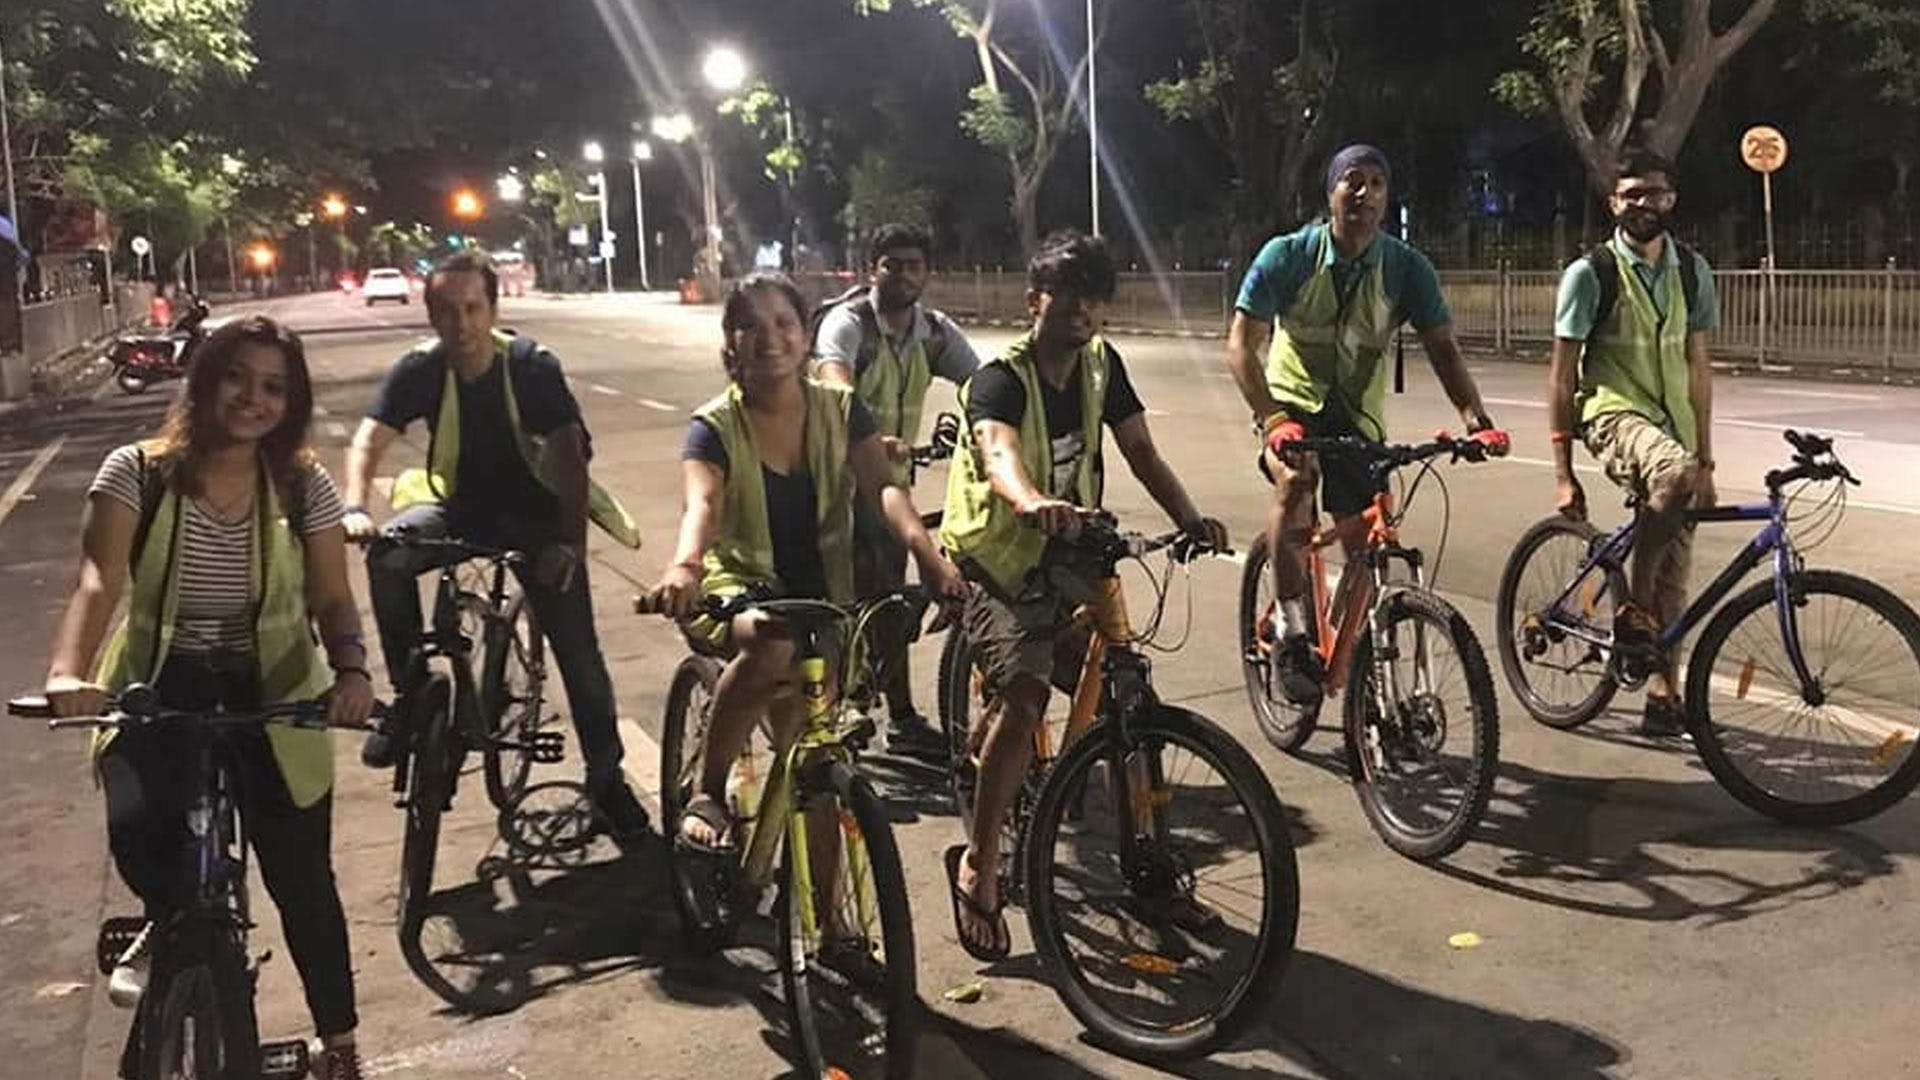 image - Register & Attend A Midnight Cycling & Storytelling Tour This Weekend!